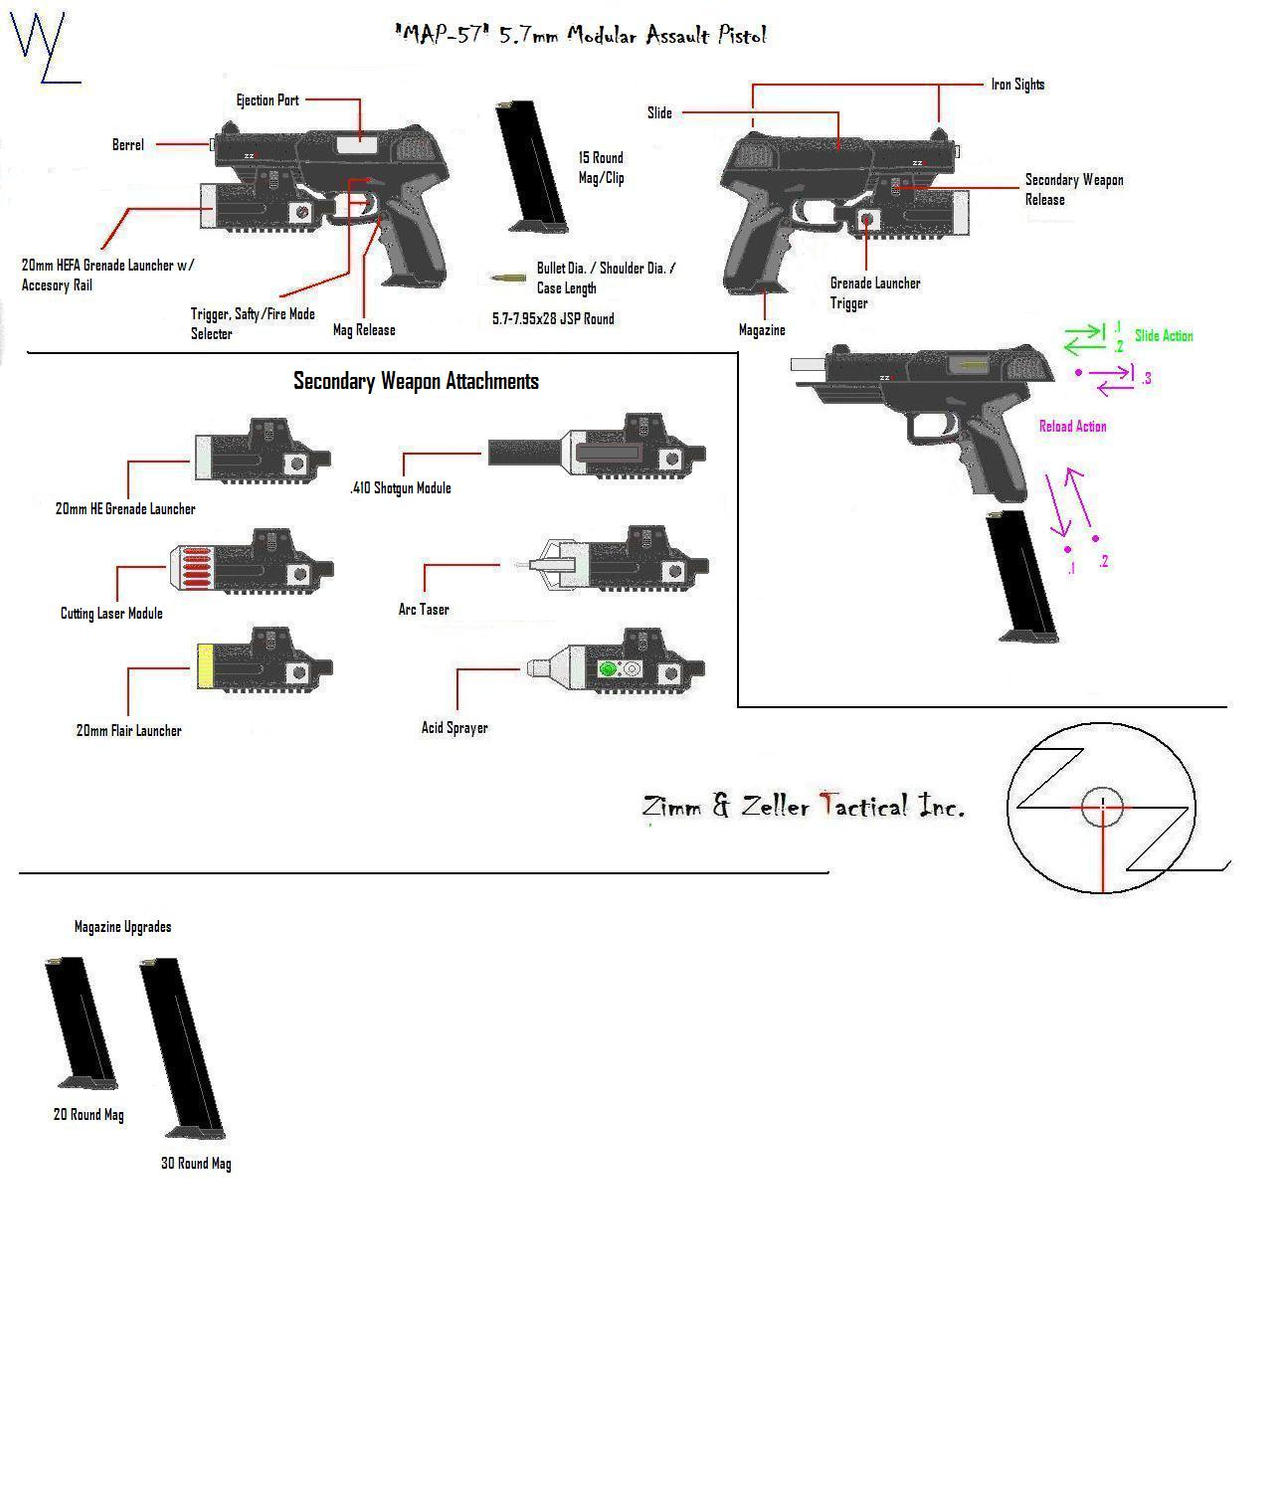 """MAP-57"" 5.7mm Pistol Info by KillSwitchWes"